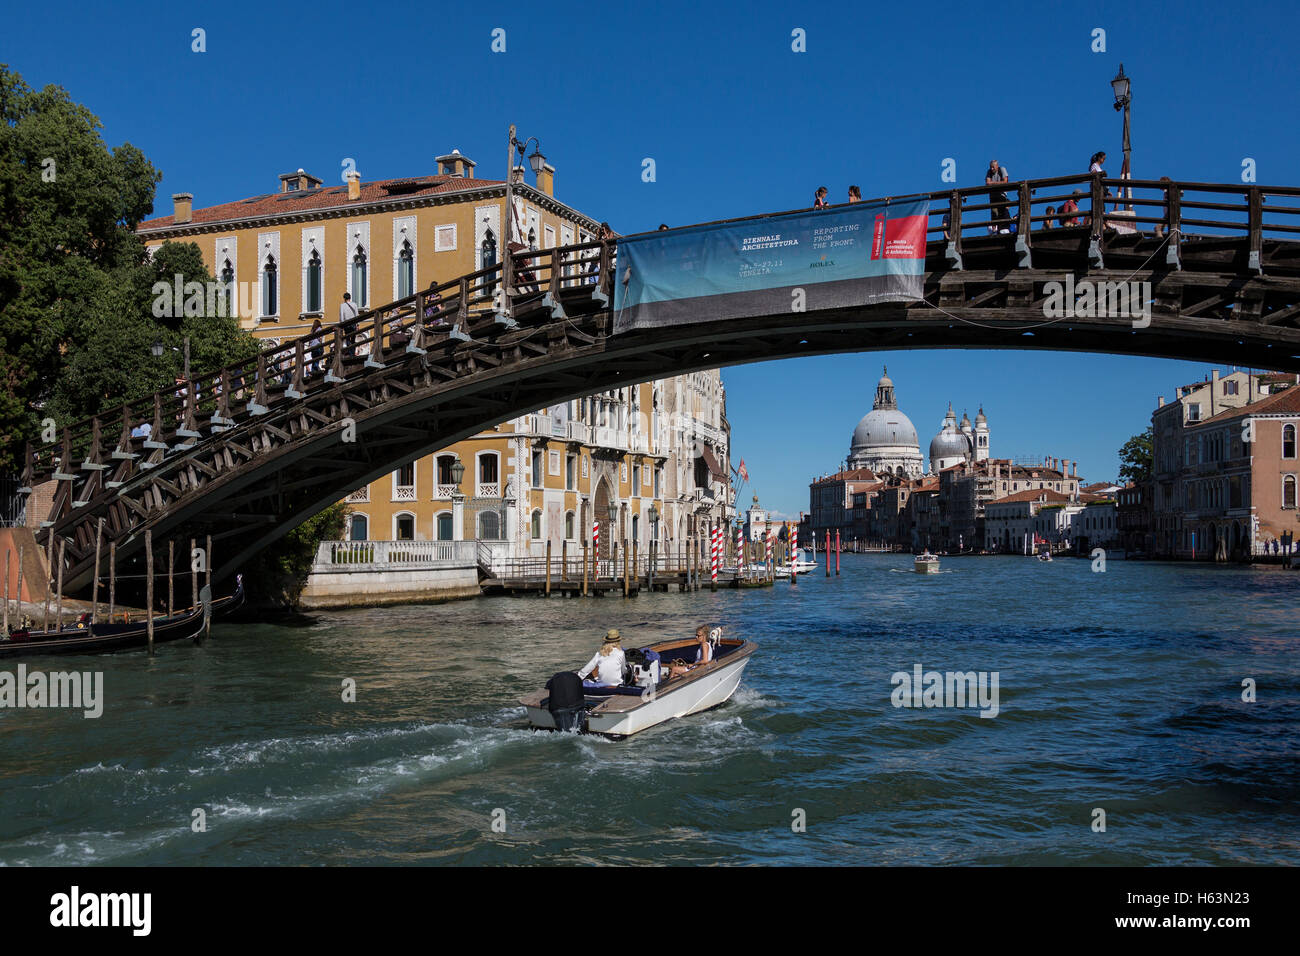 The Grand Canal in the city of Venice in northern Italy. View from under the Ponte dell Accademia. - Stock Image